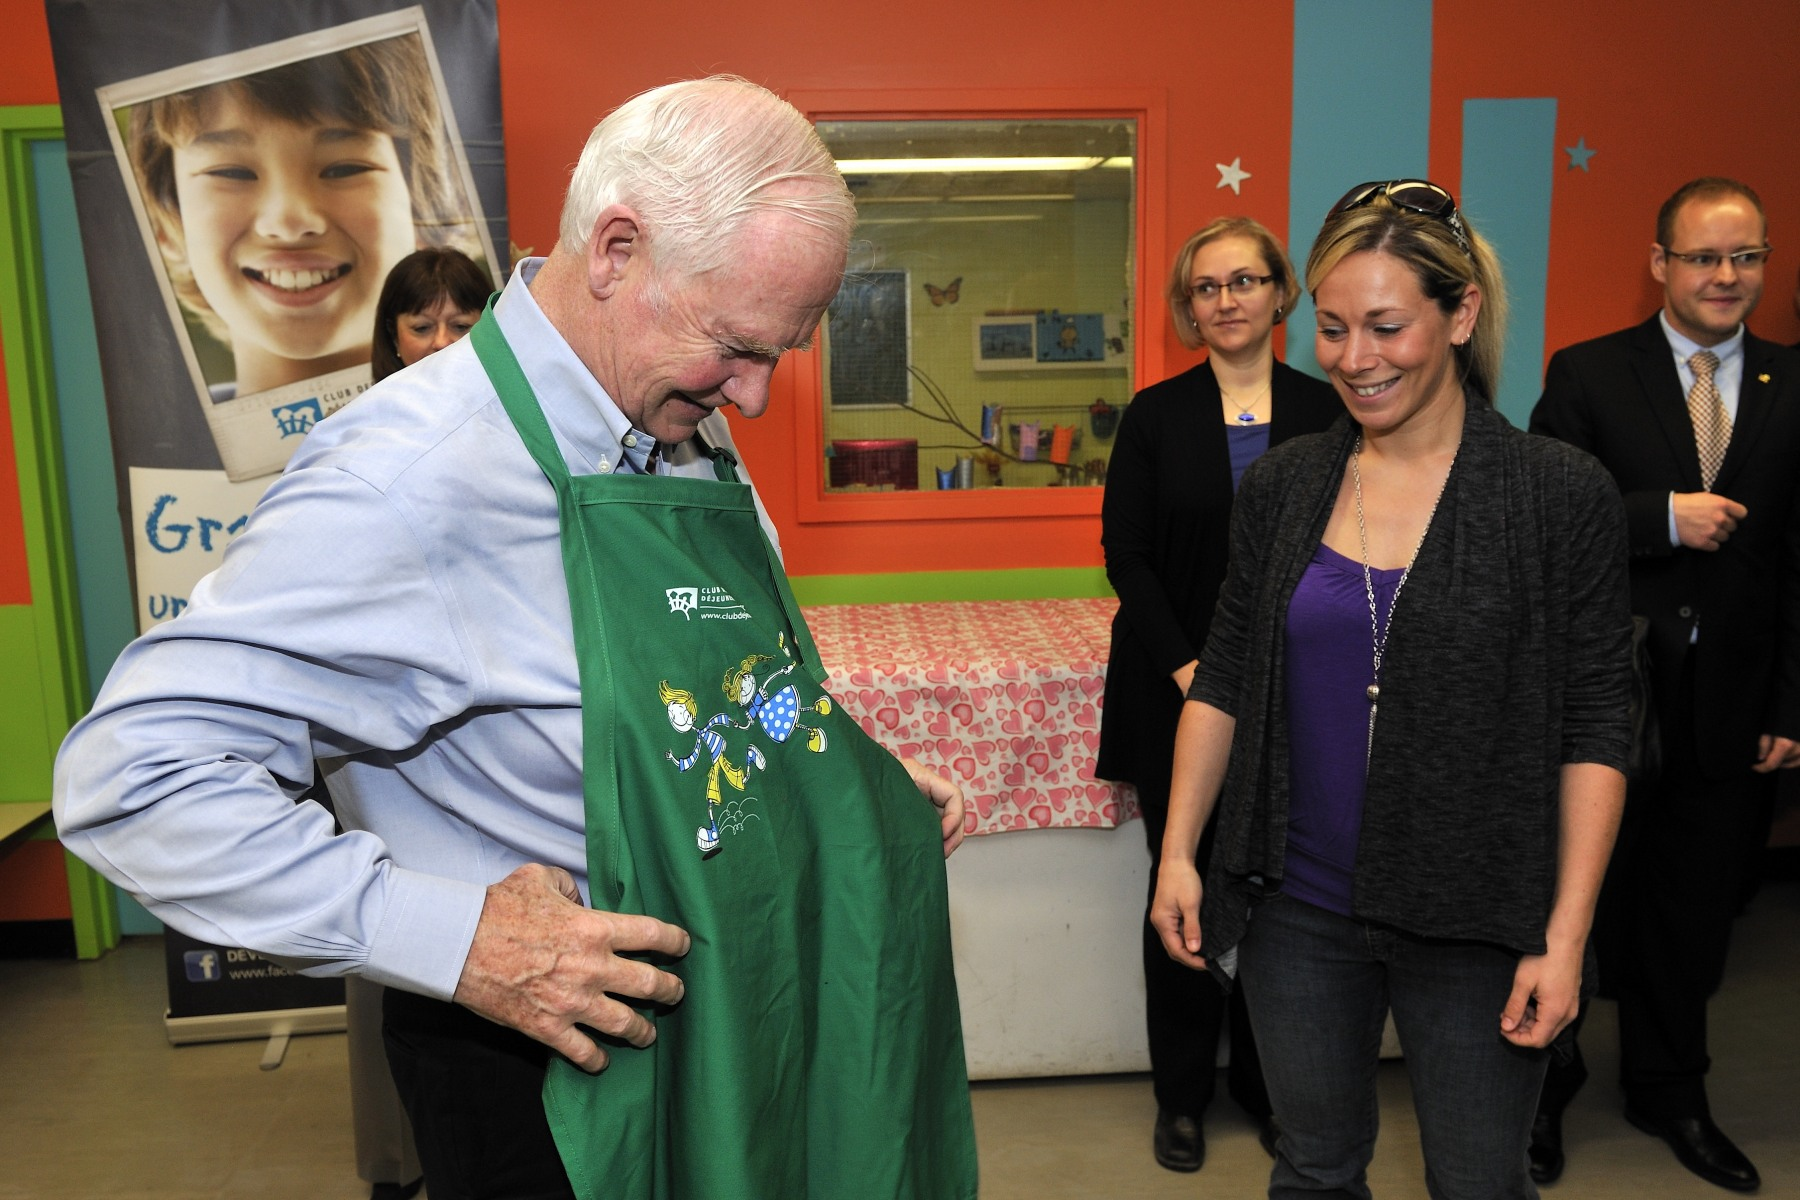 Maud Julienne, regional coordinator for Outaouais gave his Excellency an apron before he started his duty.